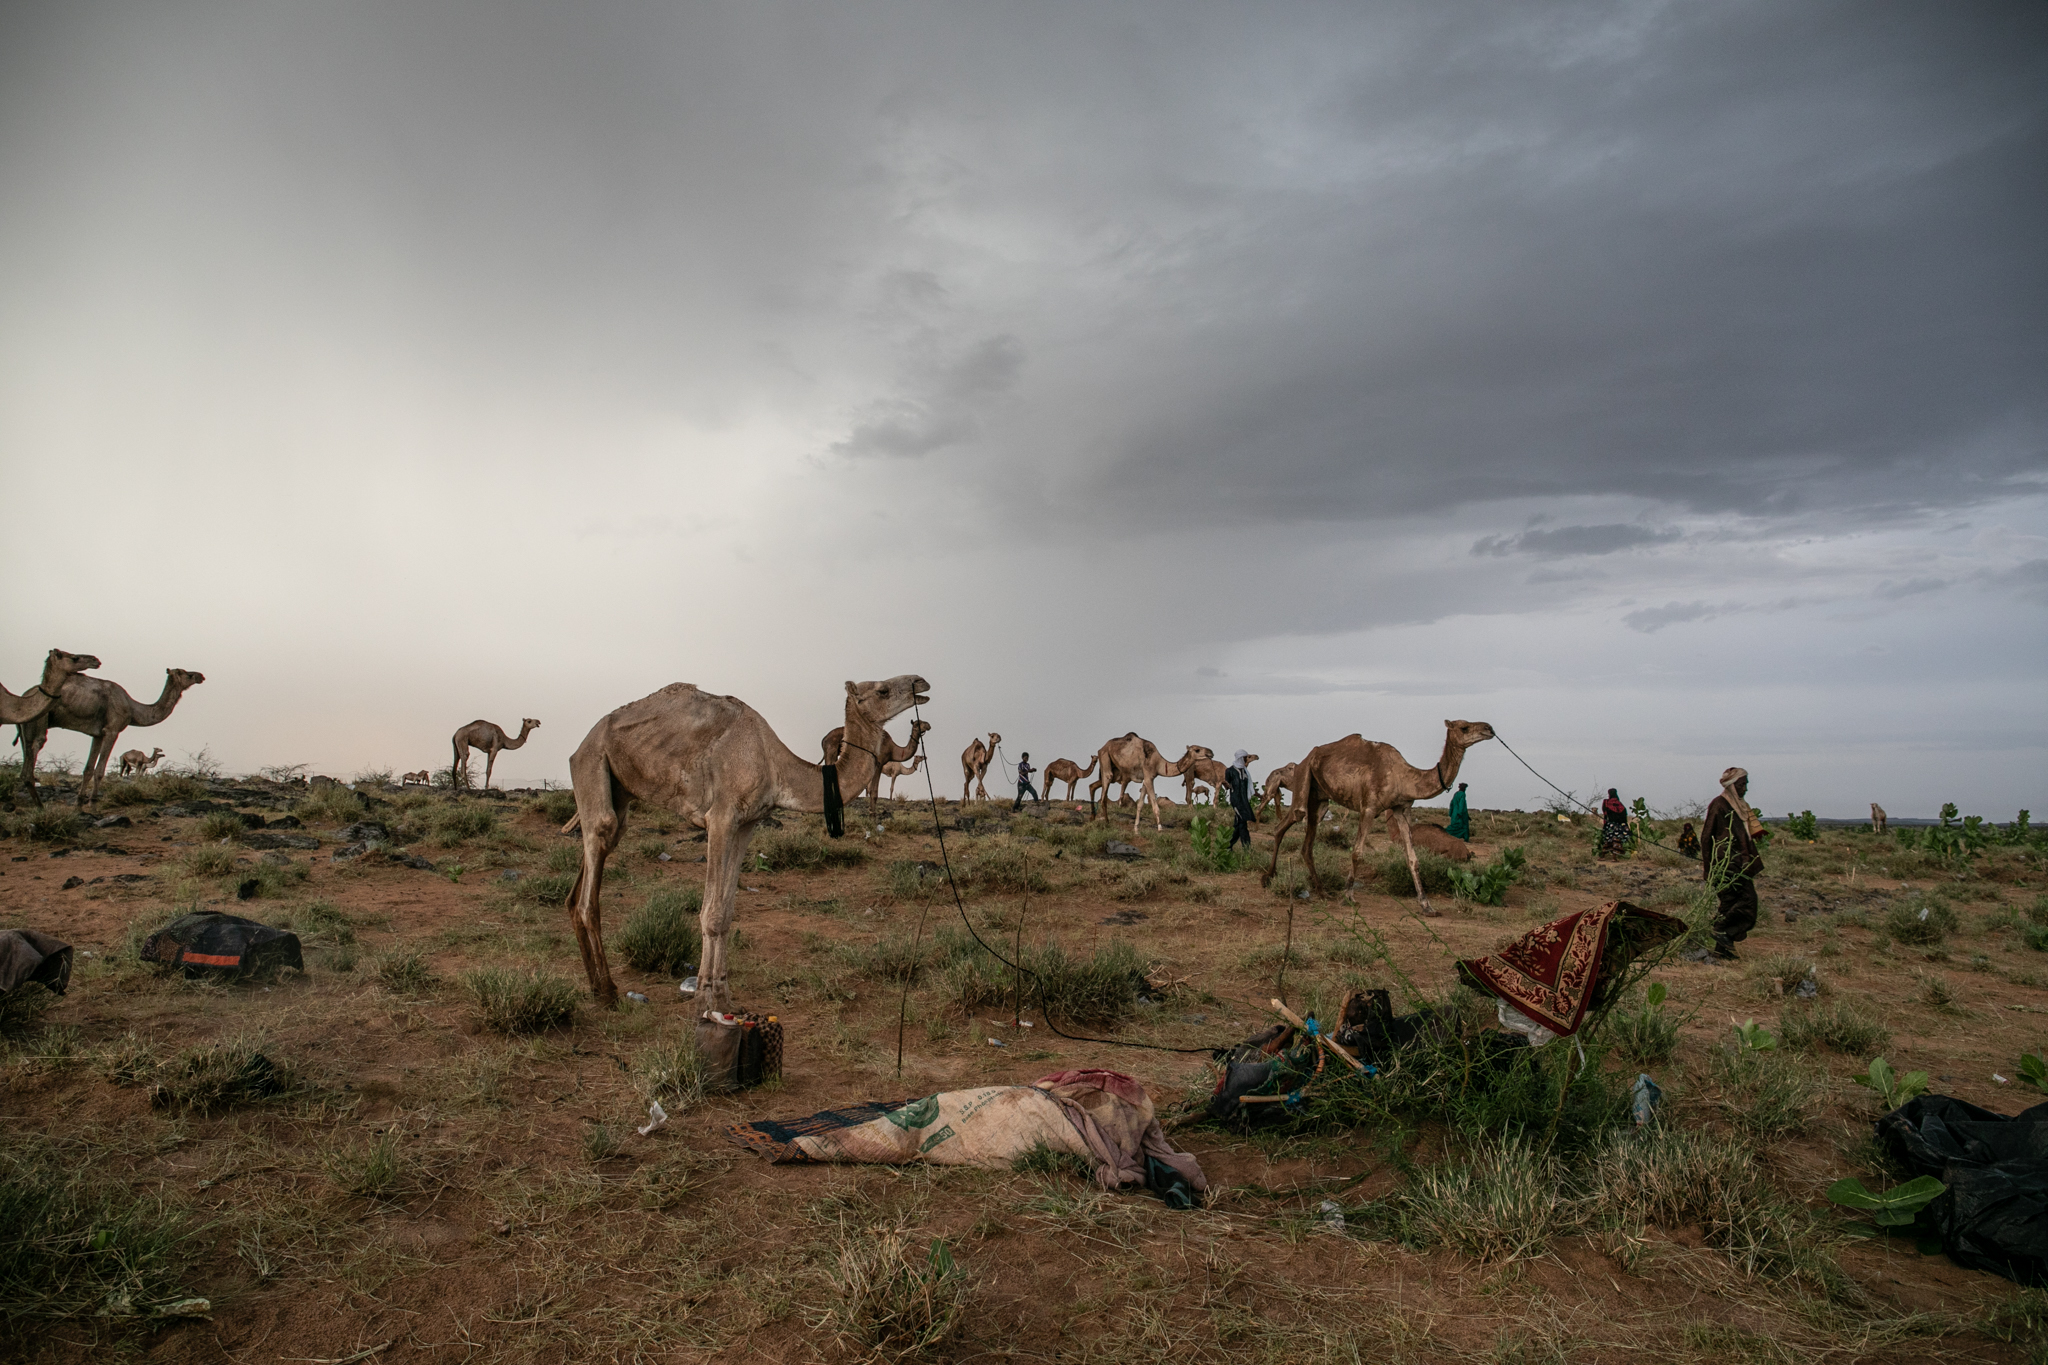 Ingall's oasis and saline soils provide food and water for the tired camels and cattle before taking the route to the south.